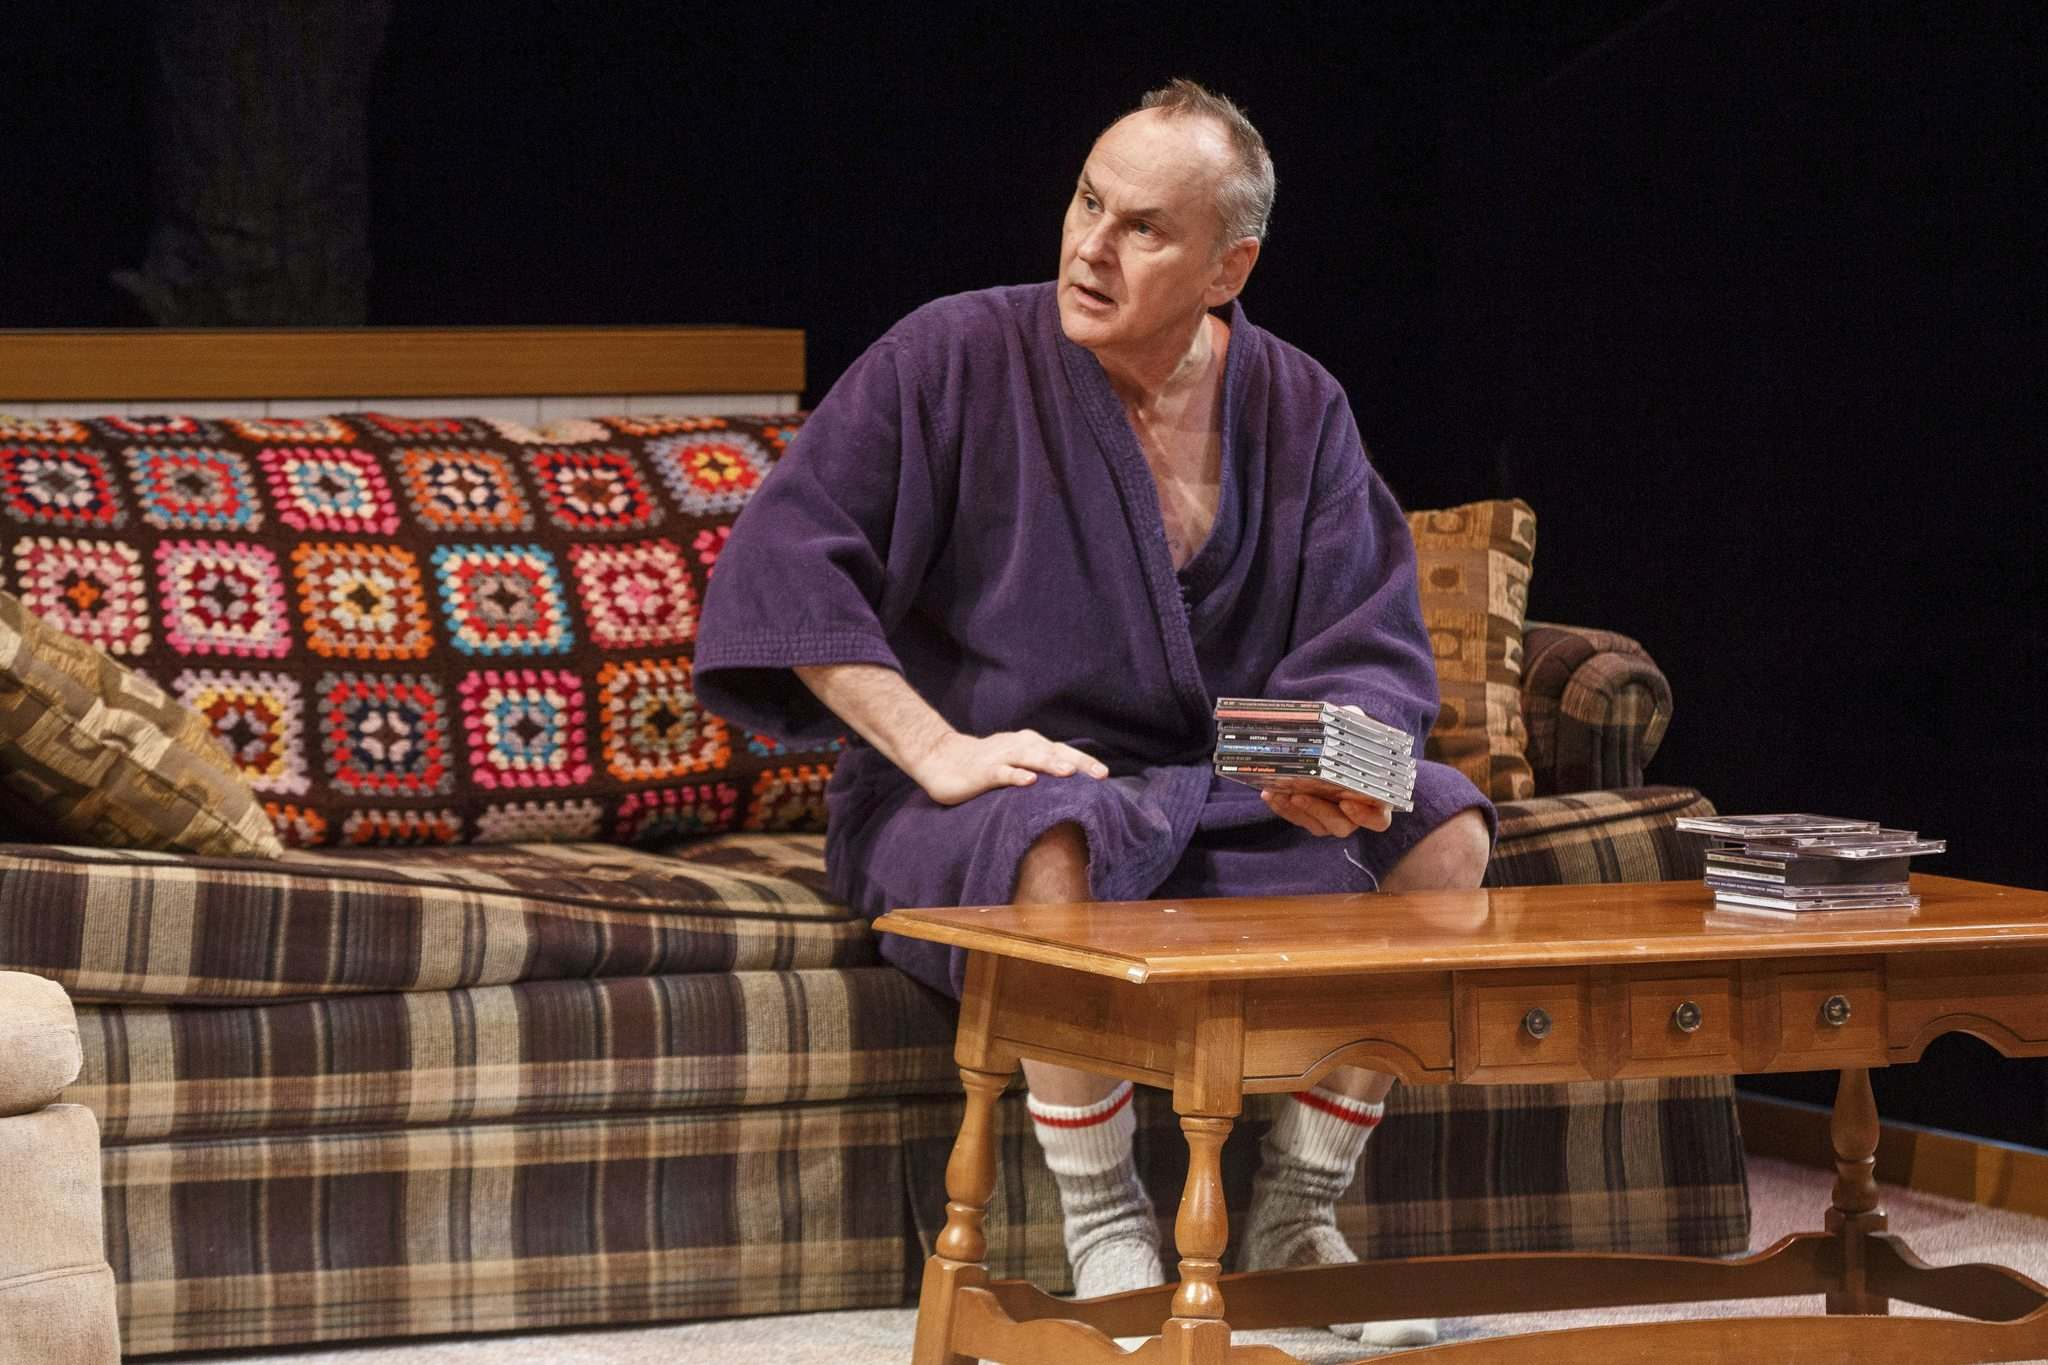 Daniel MacIvor's character Dougie has some medical issues he battles with booze instead of his prescribed medication. (Mike Deal / Winnipeg Free Press)